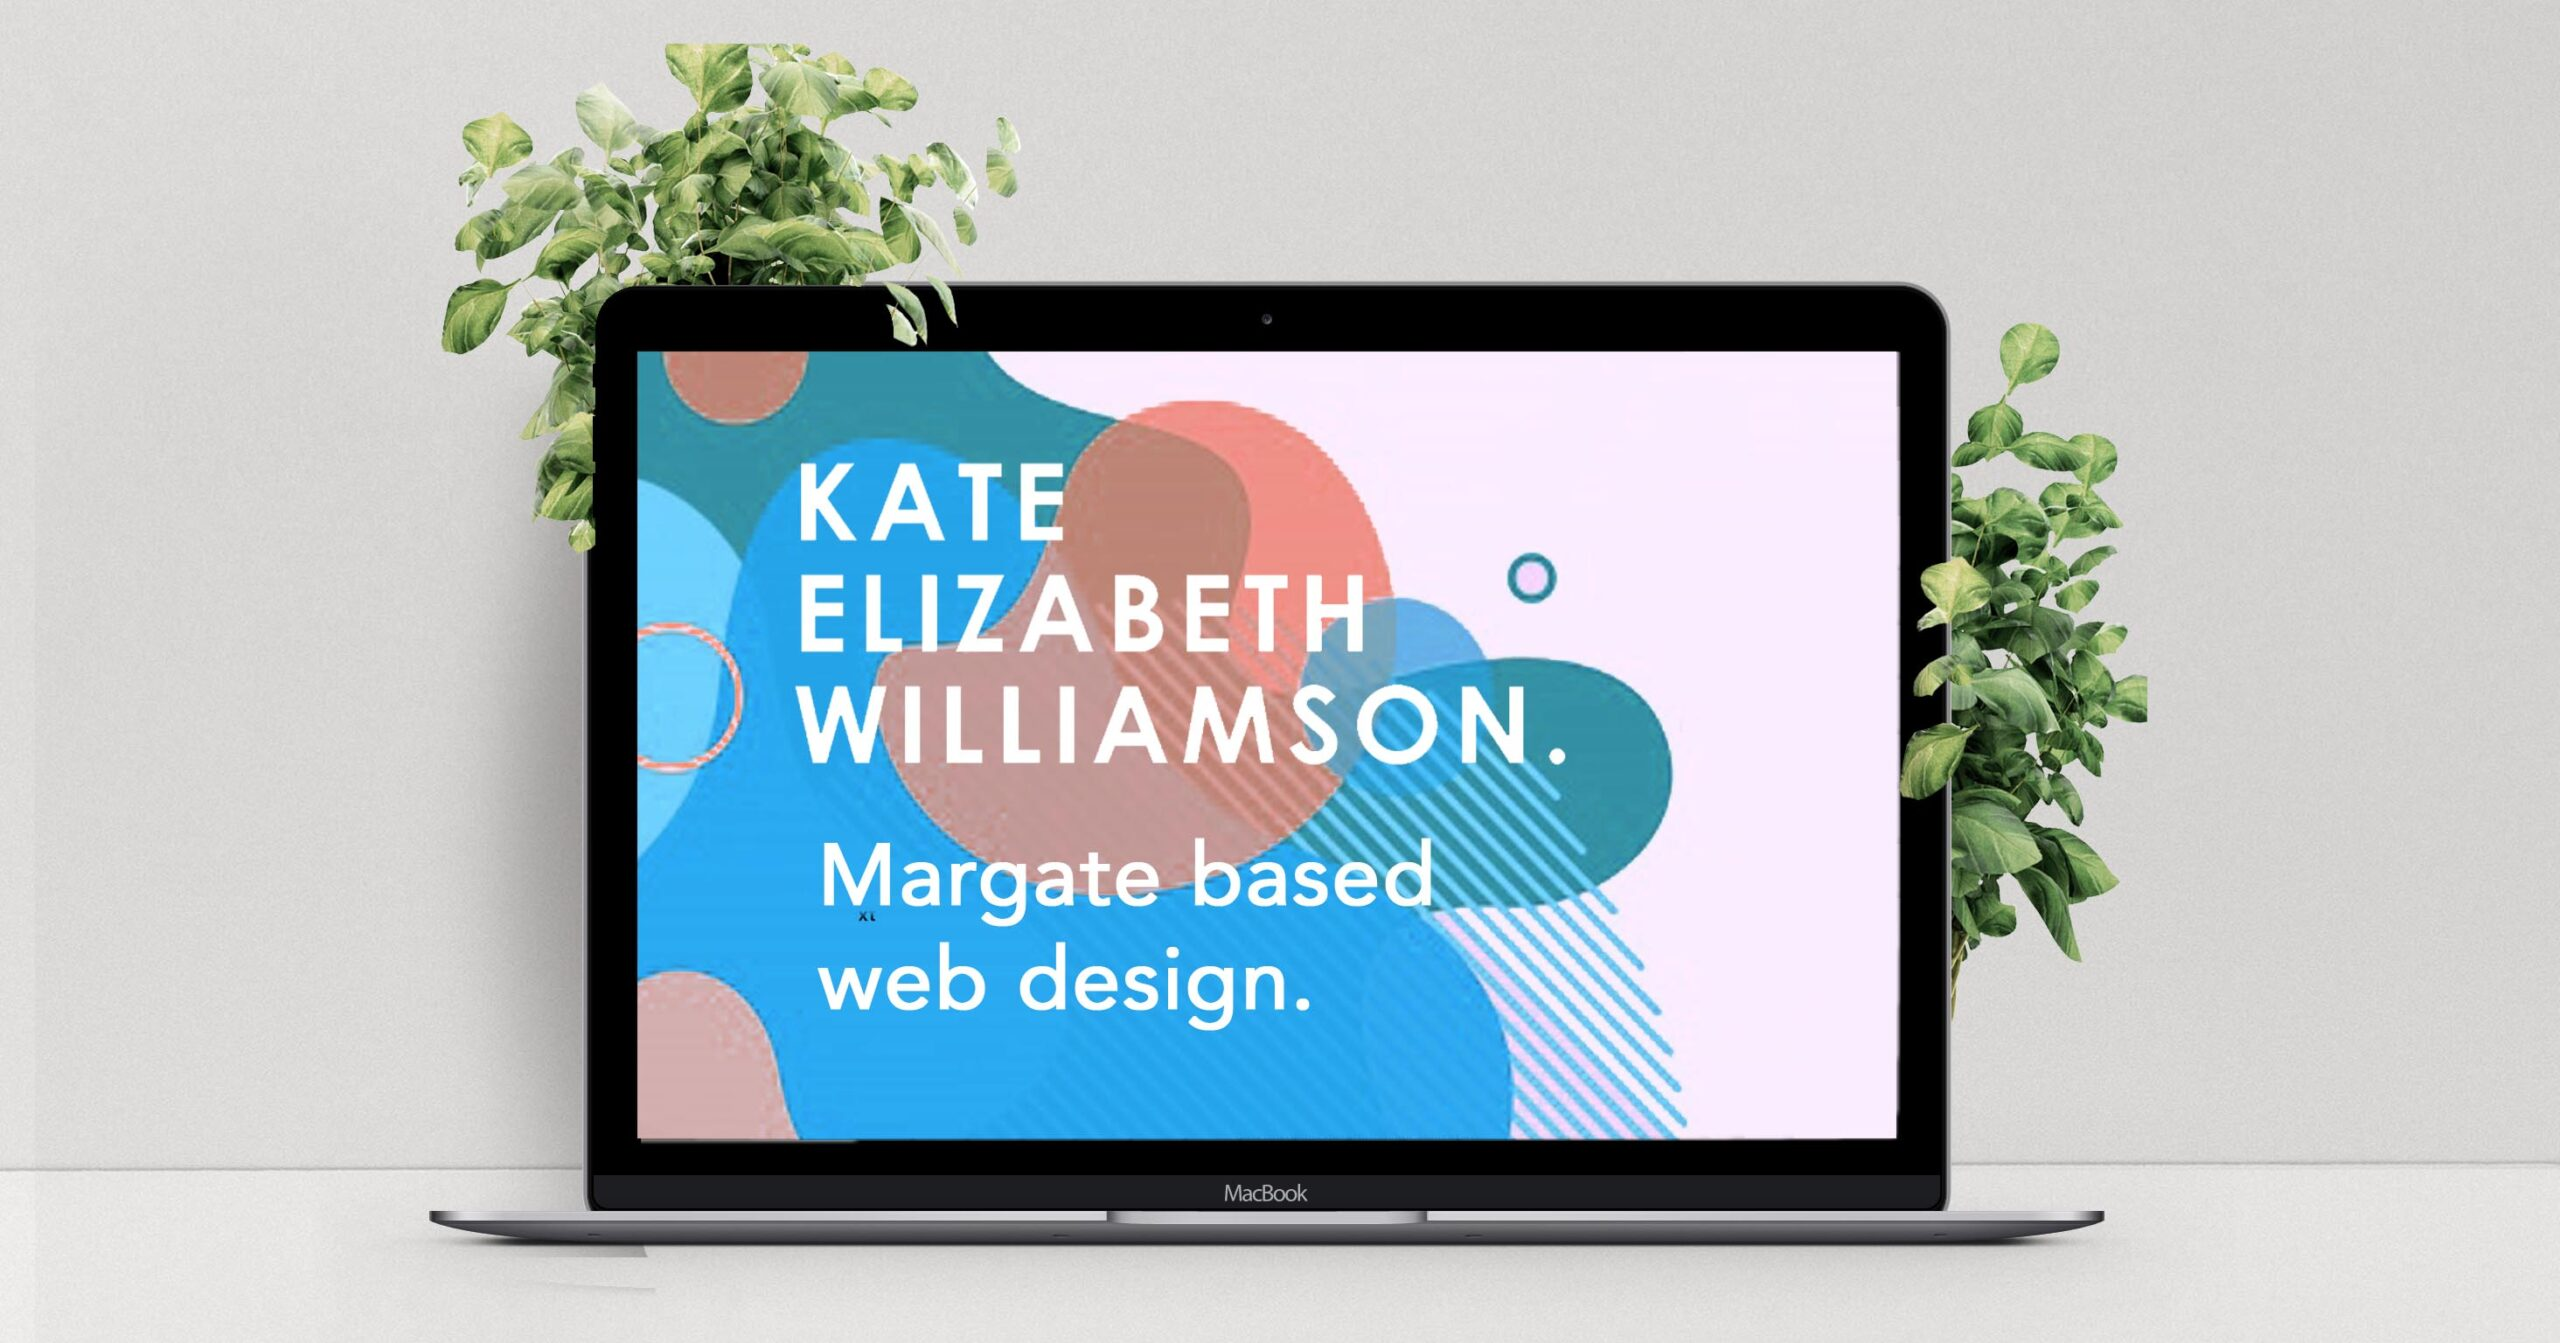 Margate web design